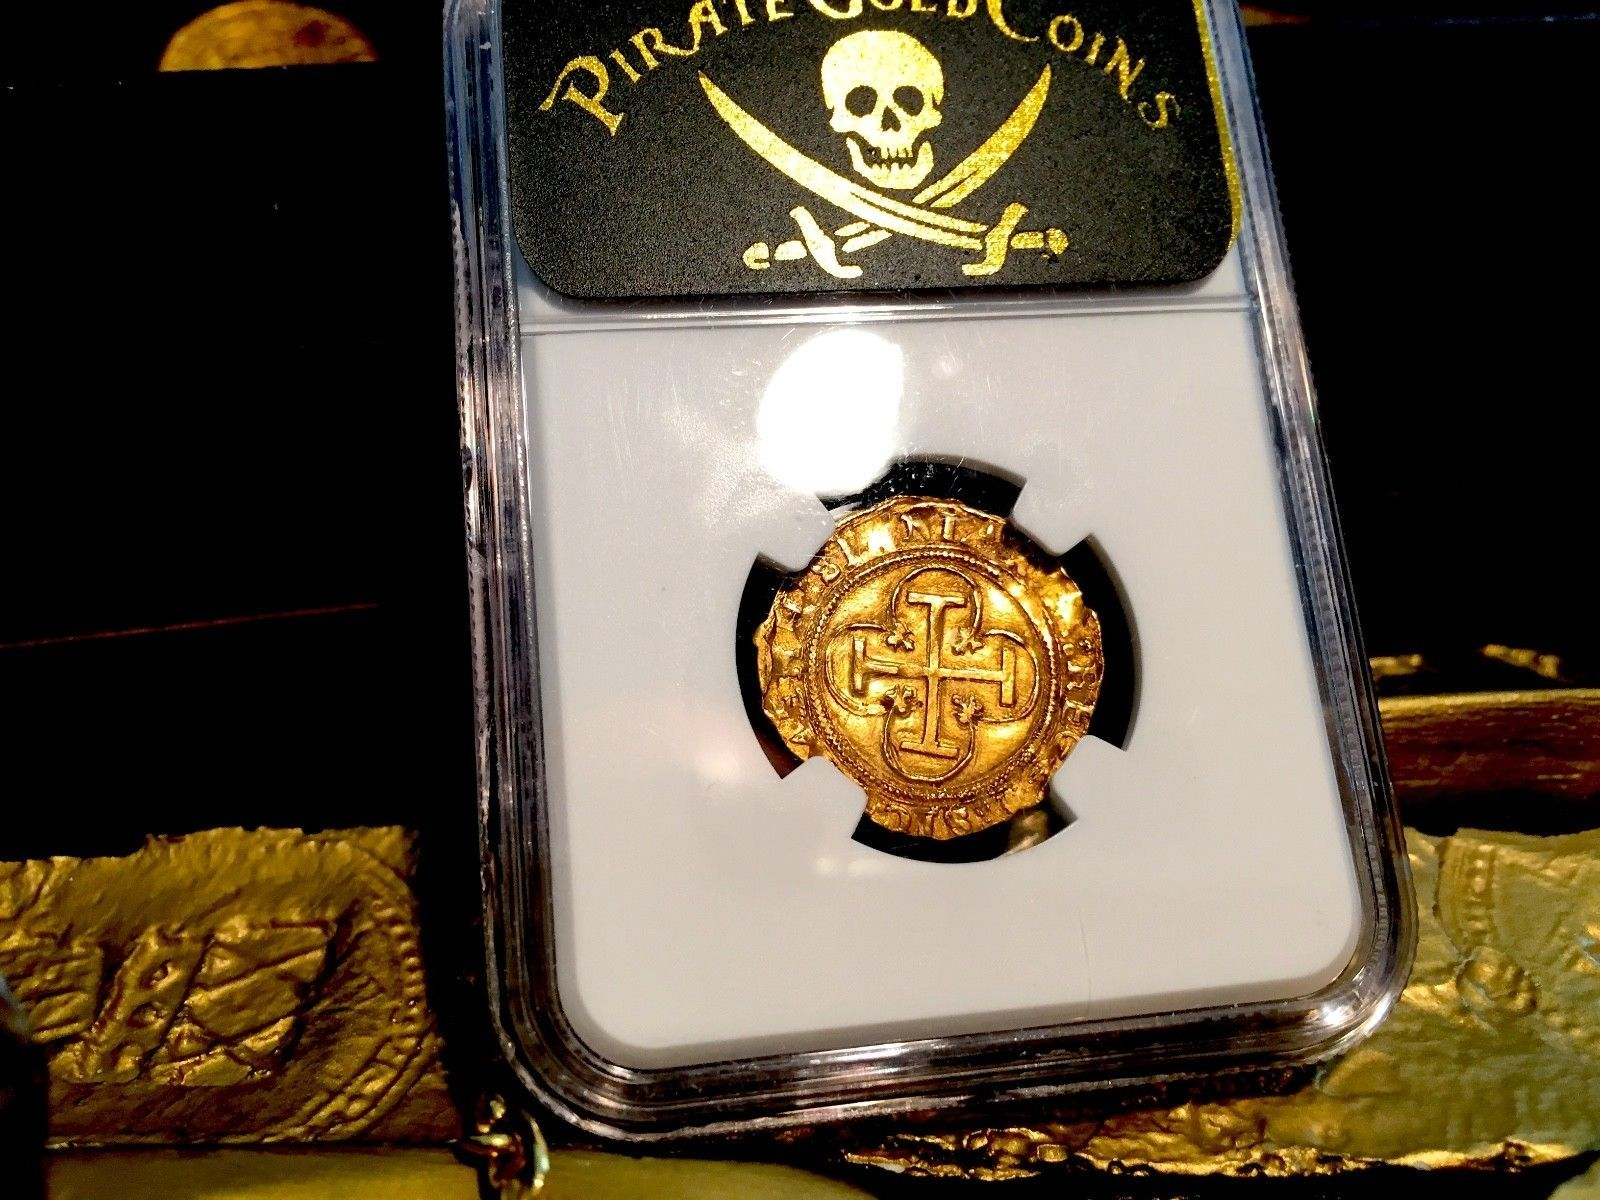 SPAIN 1516-56 1 ESCUDO FULL LEGENDS AND CROWN NGC 62 GOLD COB DOUBLOON COIN